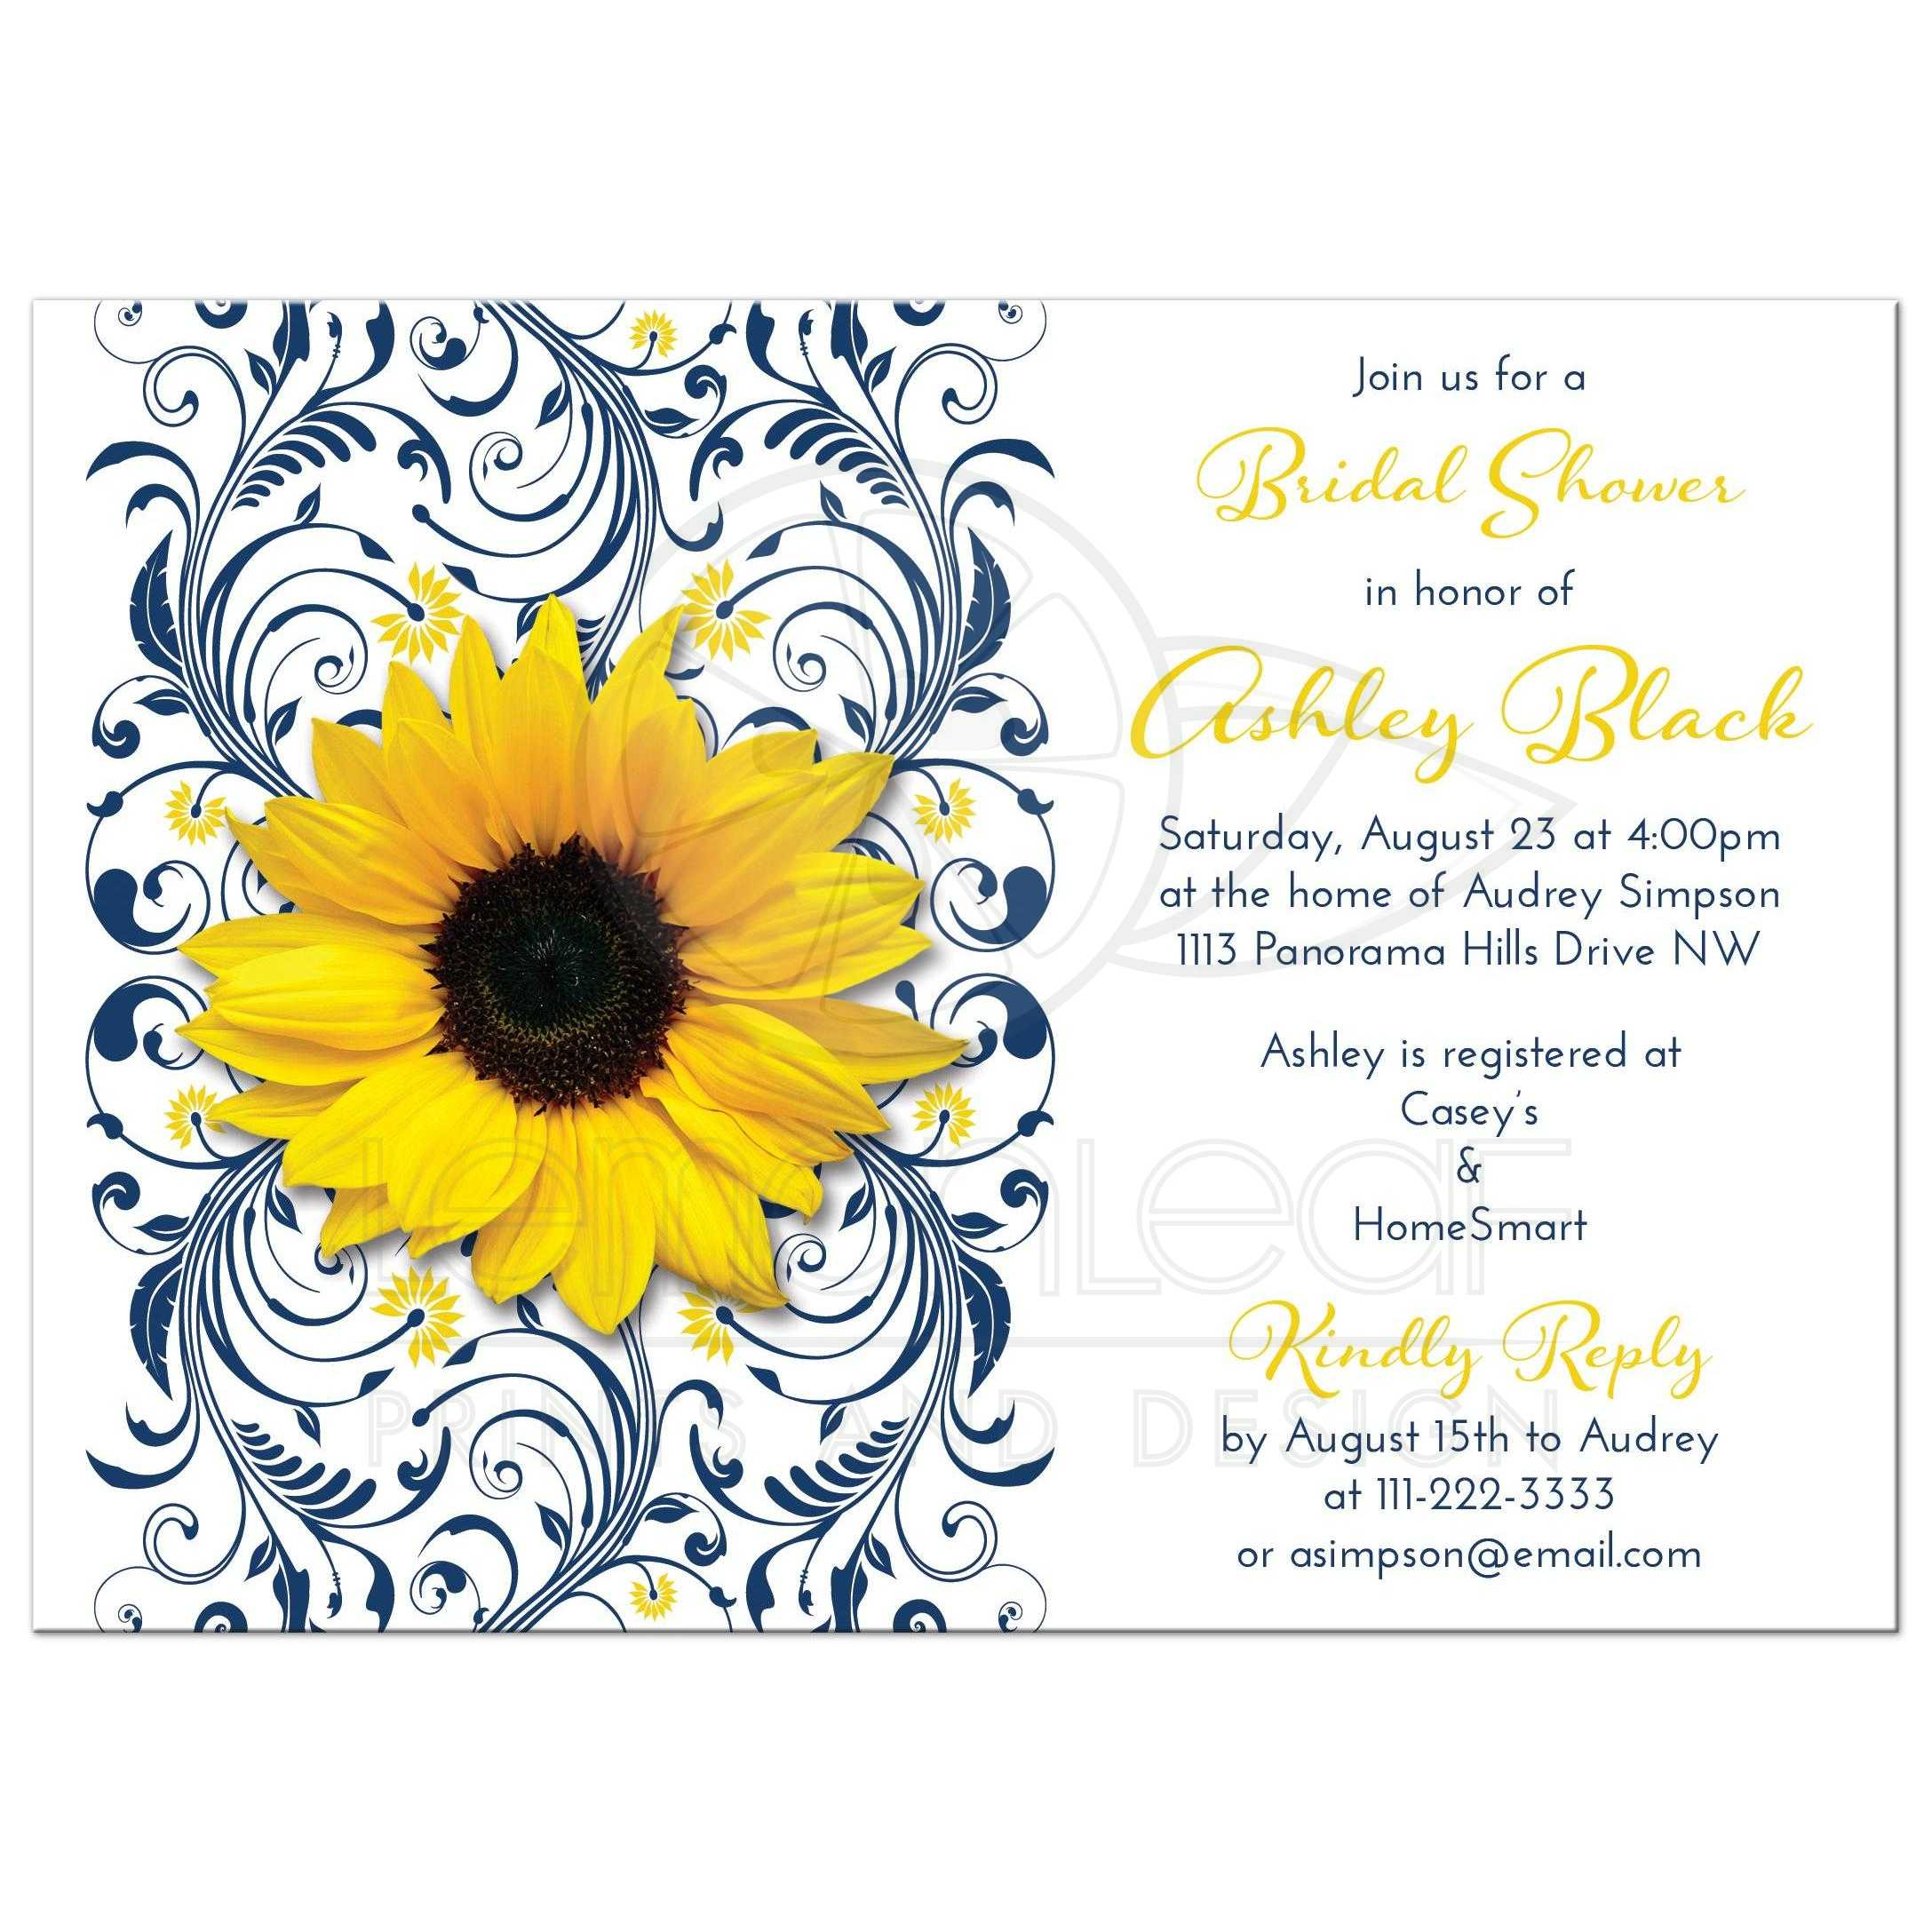 Bridal Shower Invitation Sunflower Navy Blue Floral